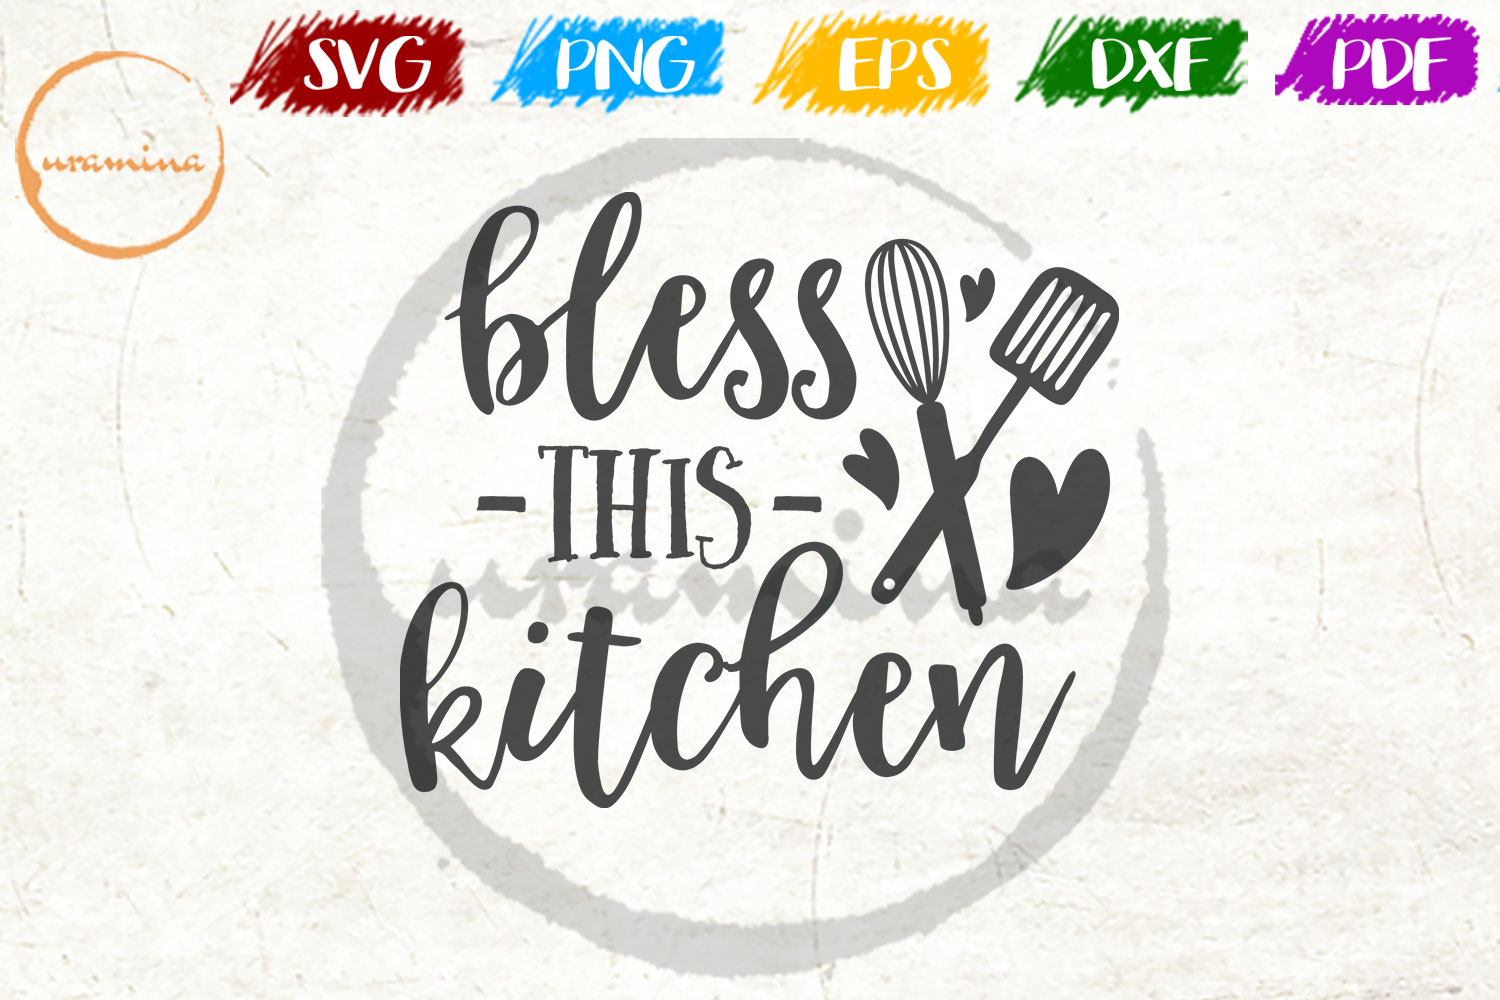 Download Free Bless This Kitchen Graphic By Uramina Creative Fabrica for Cricut Explore, Silhouette and other cutting machines.